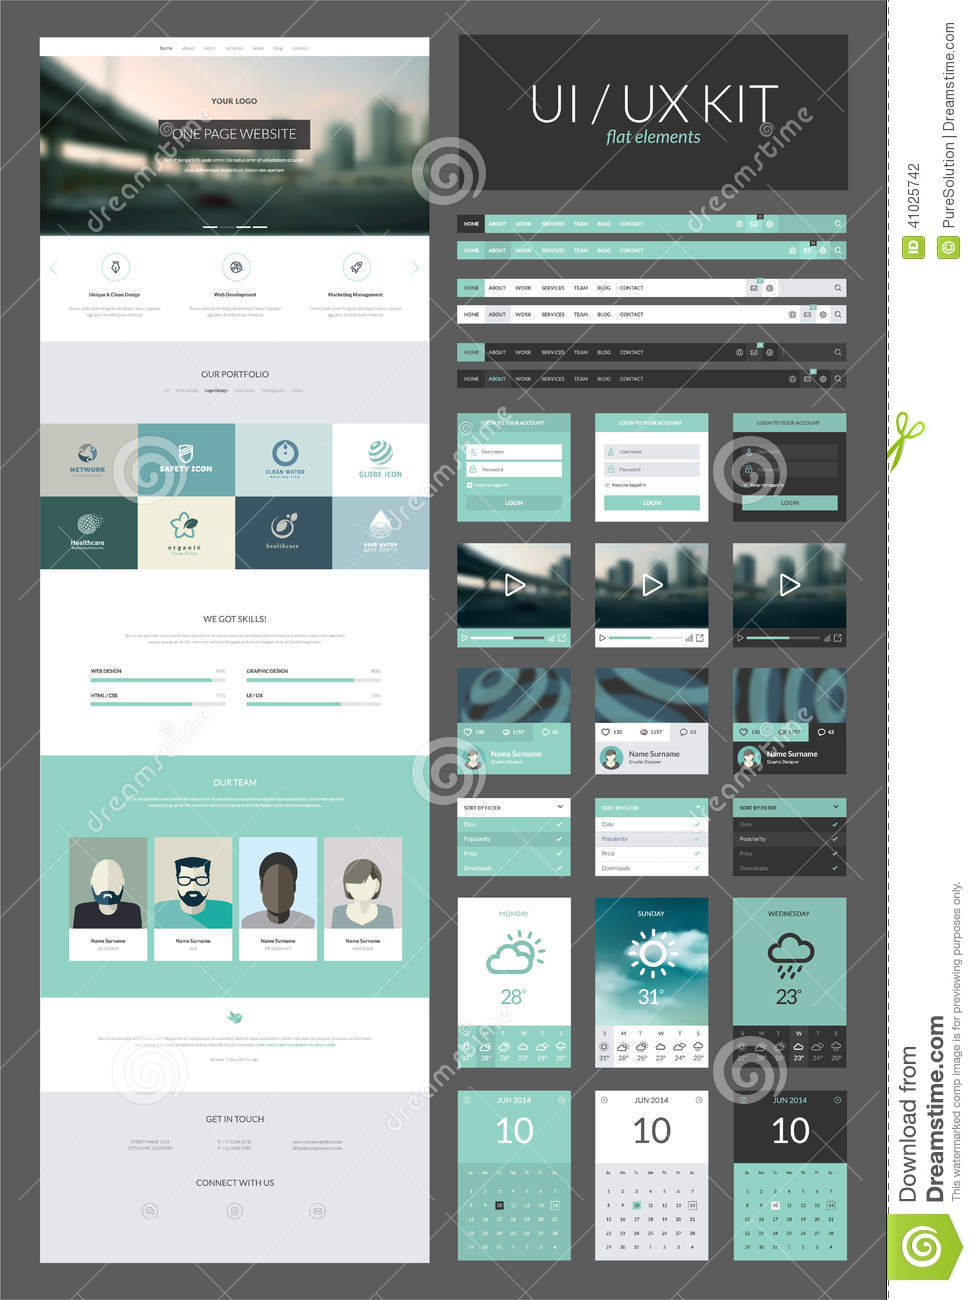 one page website design template stock illustration